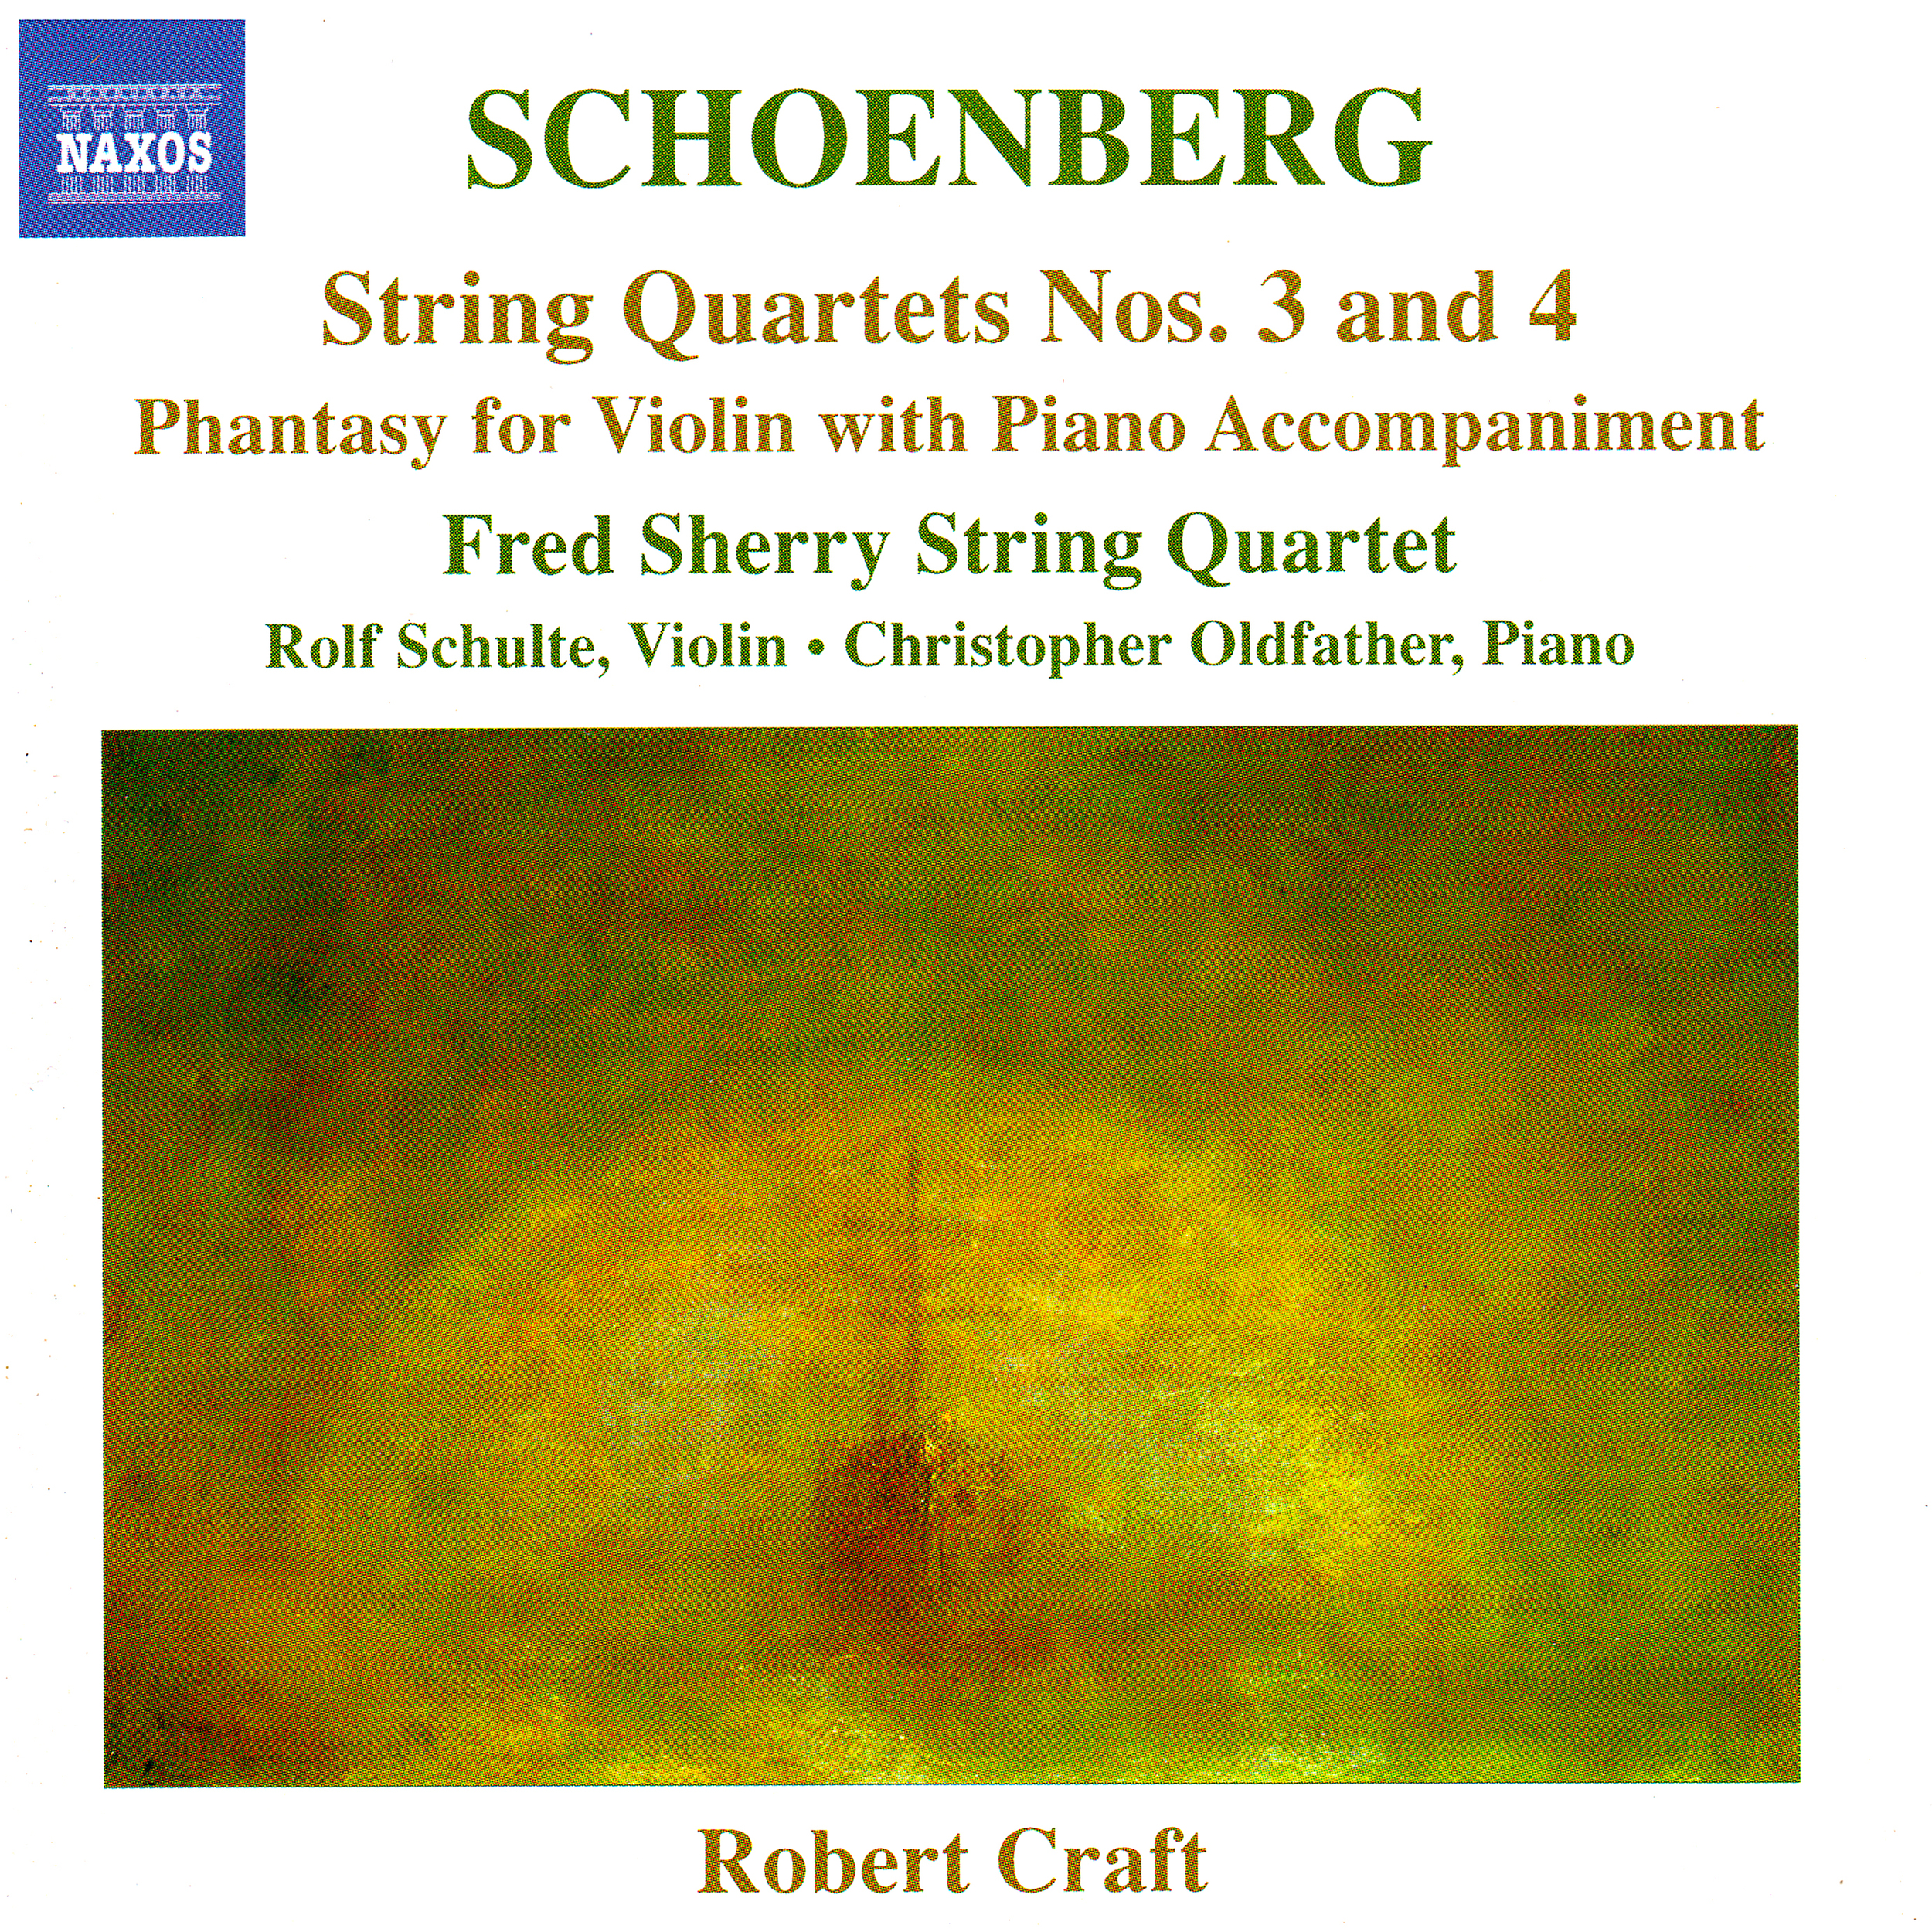 craft schoenberg str qts 3 + 4.jpg